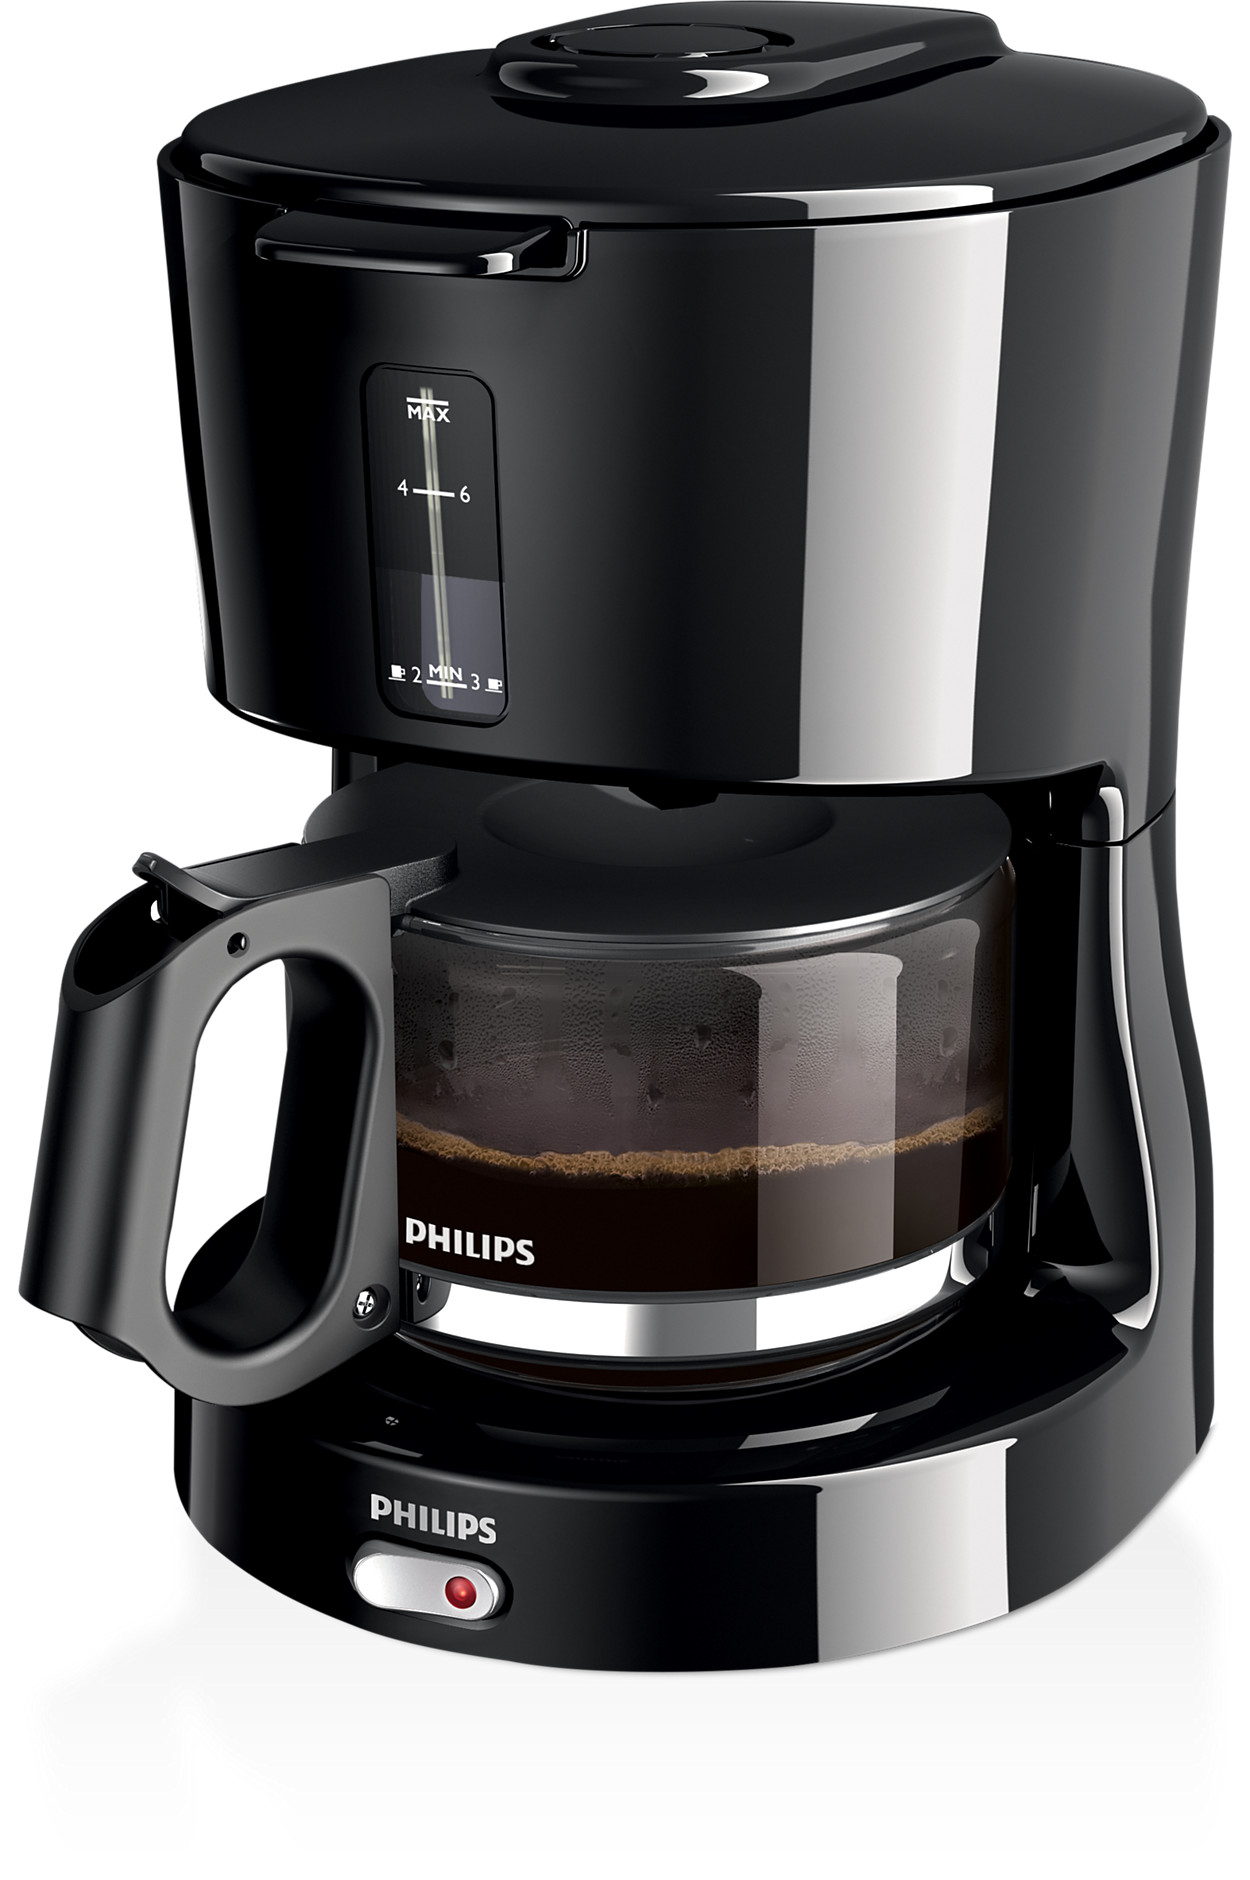 Buy The Philips Daily Collection Coffee Maker Hd7450 20